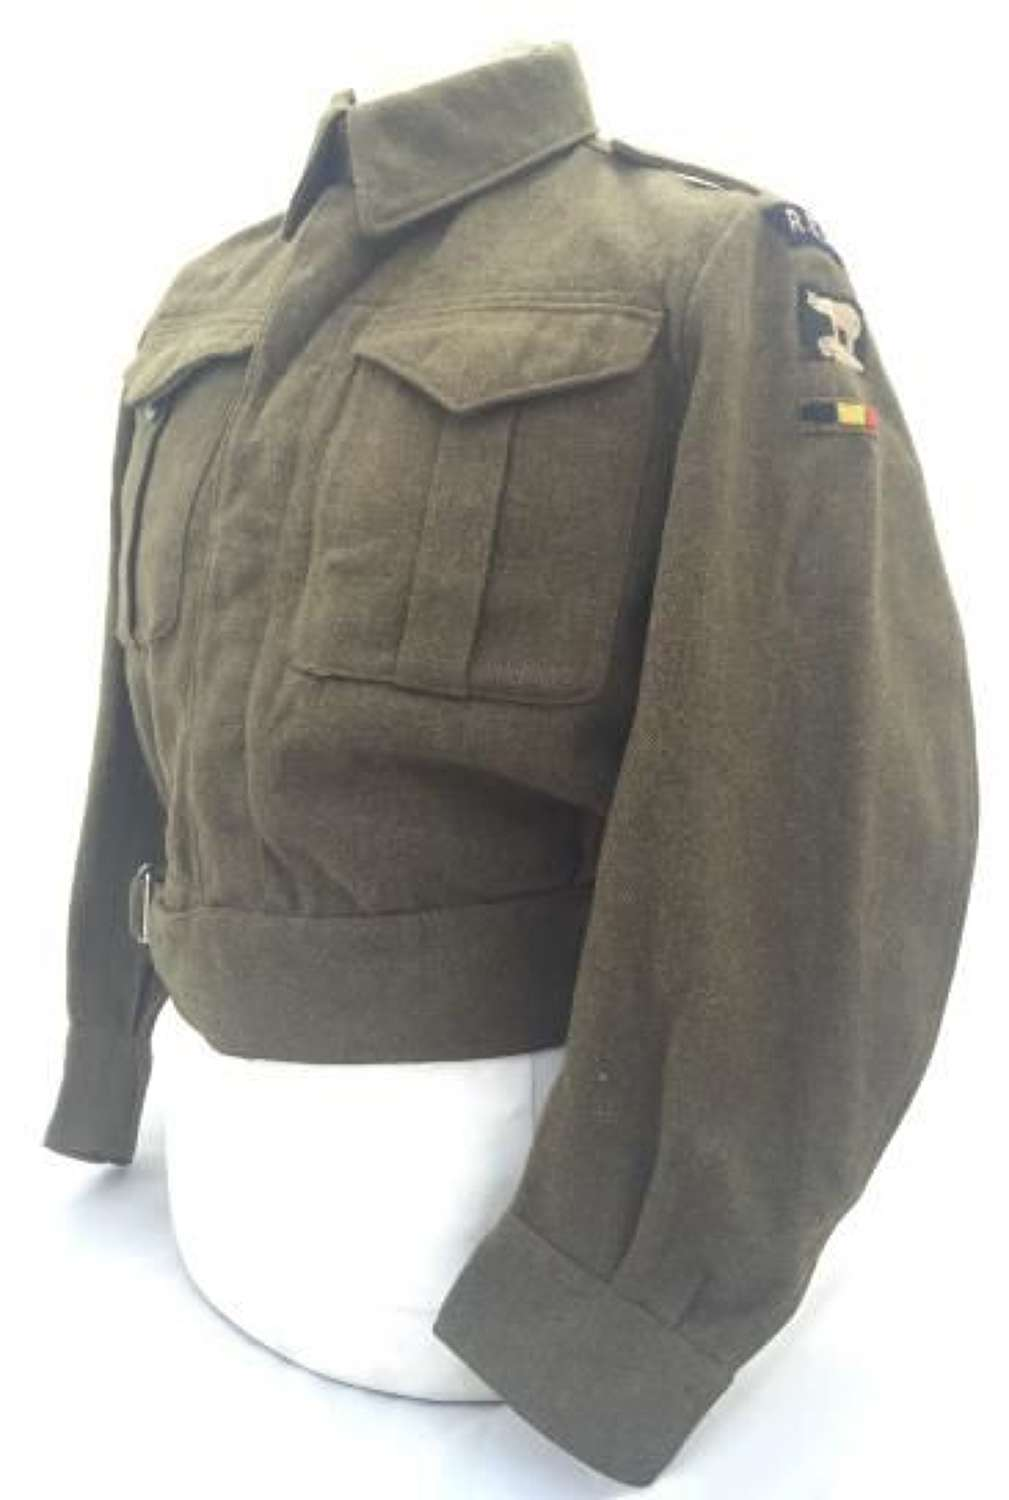 1944 Dated Canadian Made Battledress Blouse With REME 49 Division insignia